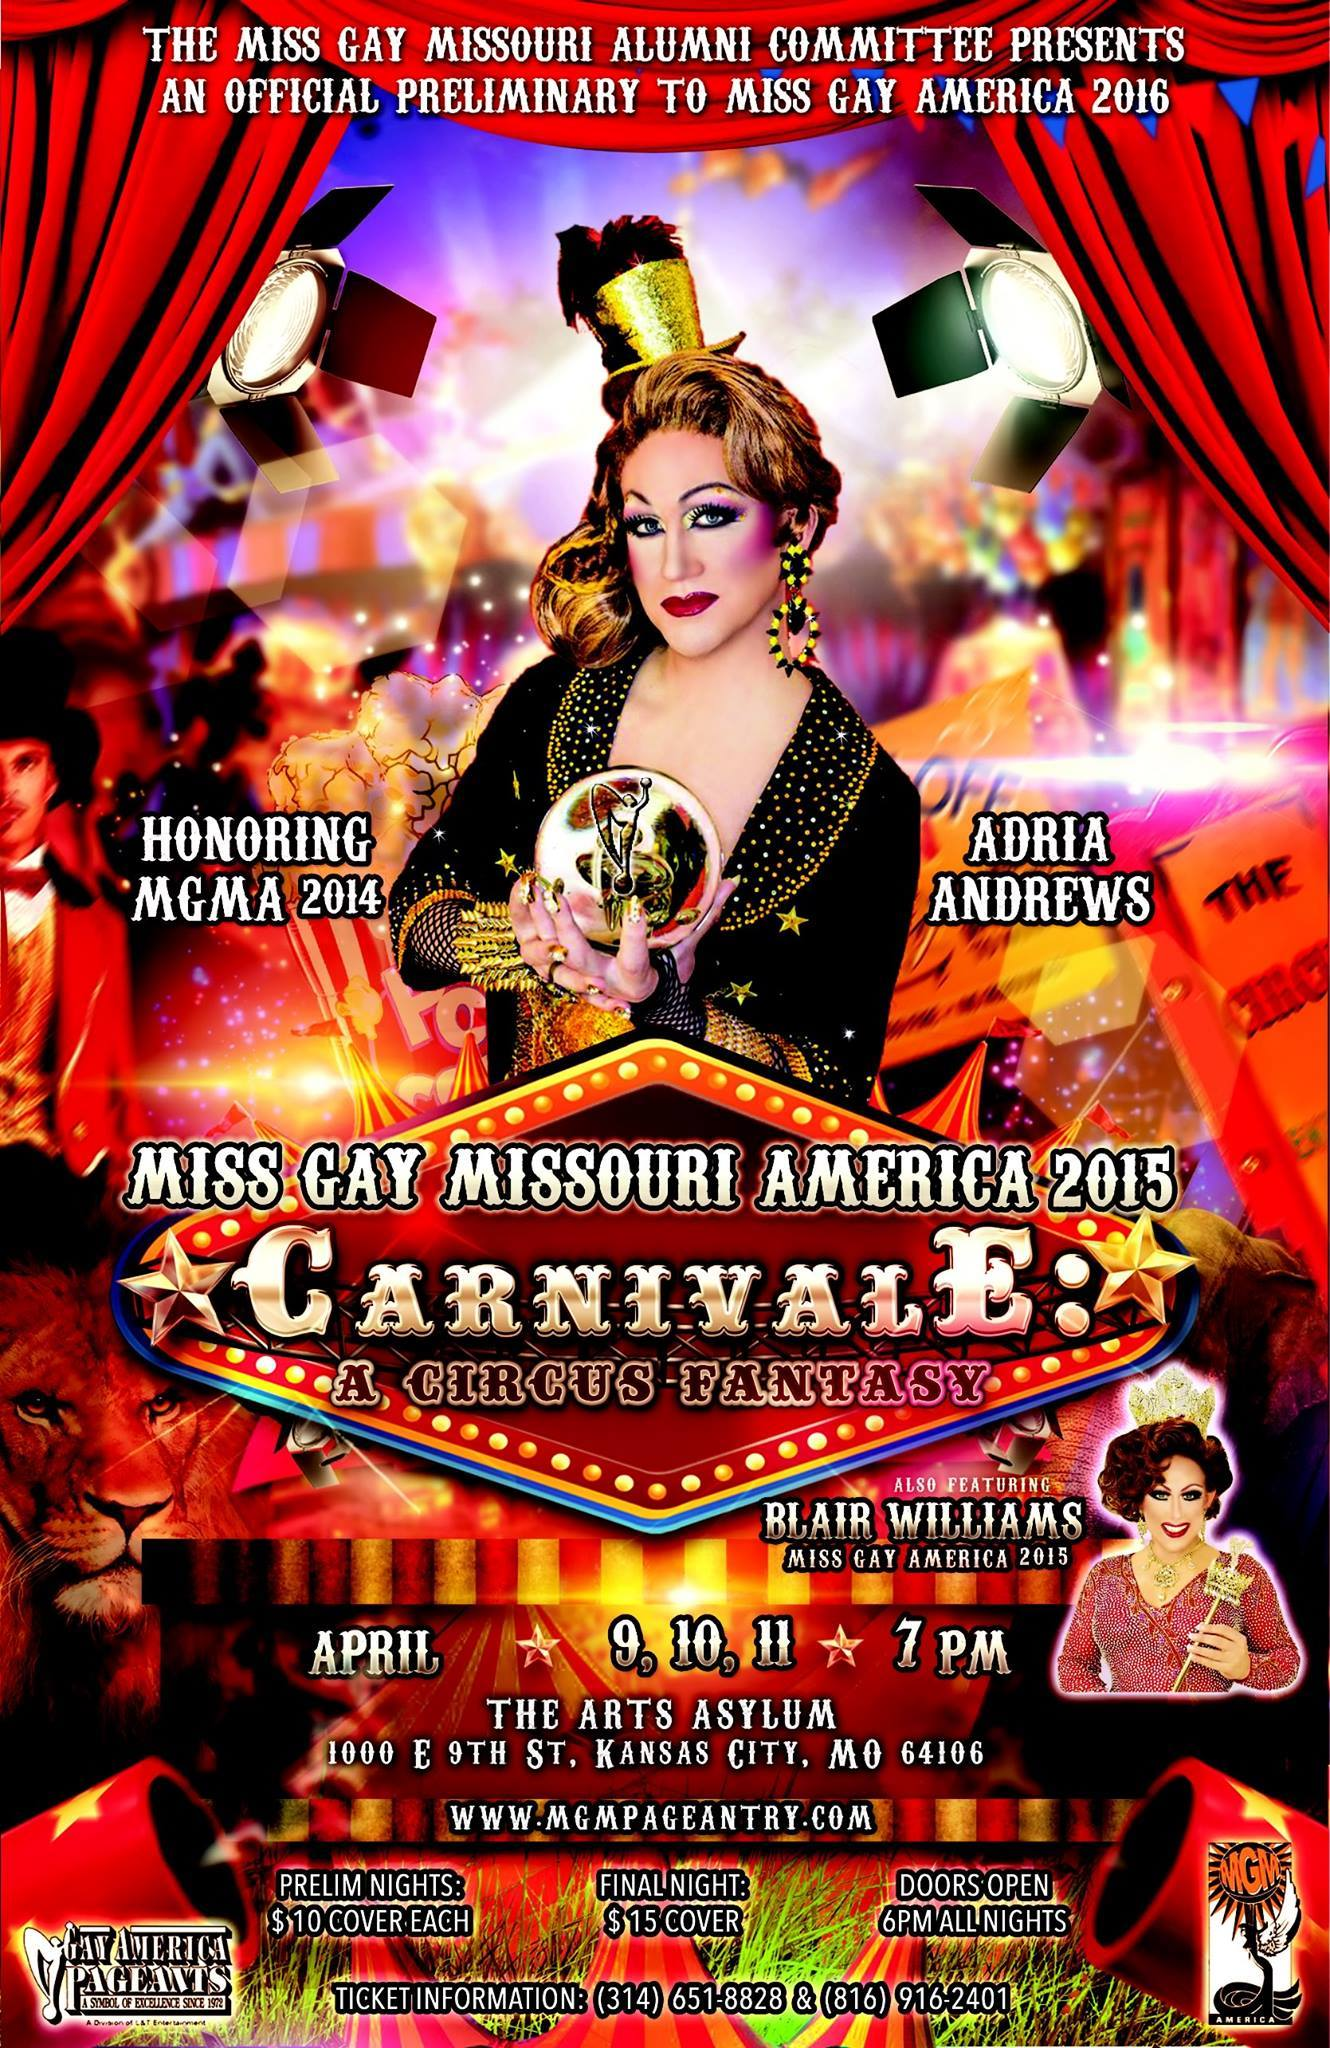 Show Ad | Miss Gay Missouri America | The Arts Asylum (Kansas City, Missouri) | 4/9-4/11/2015